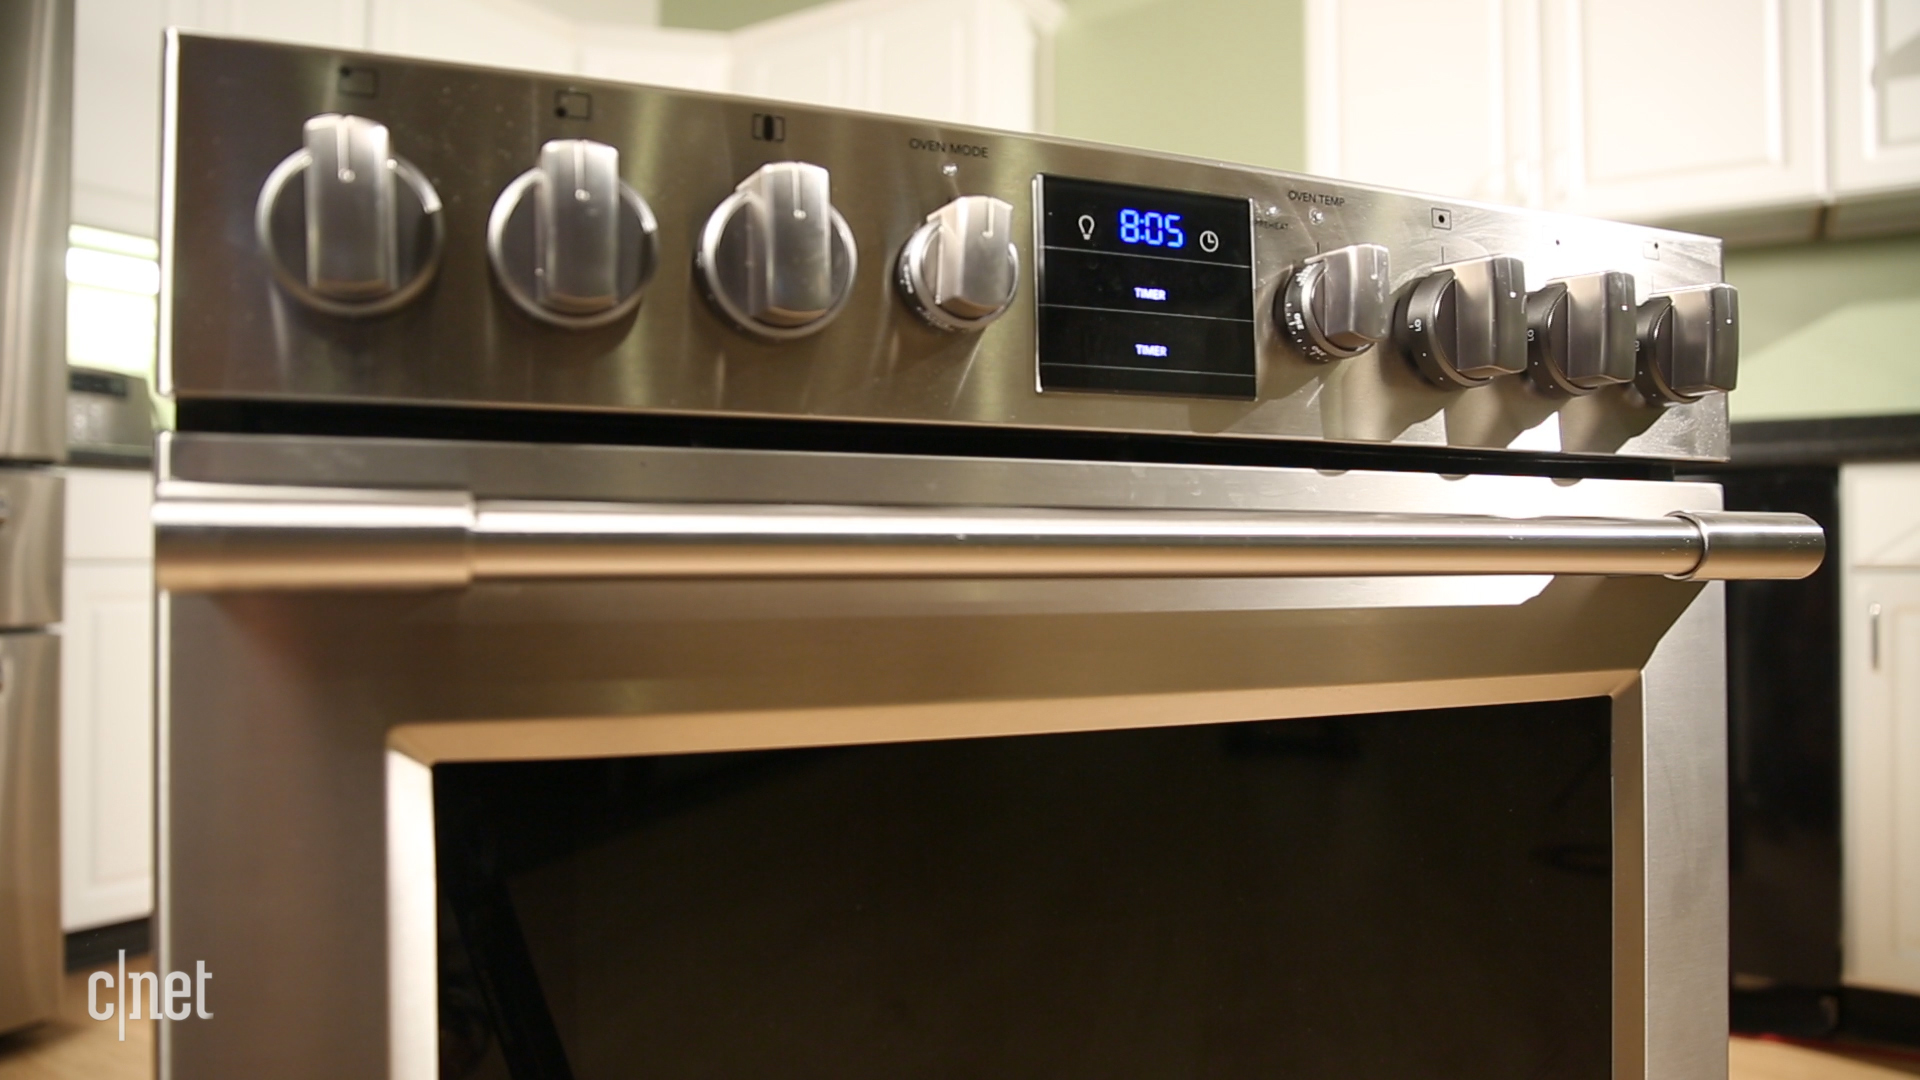 Video: A powerful burner is the highlight of this Frigidaire gas stove